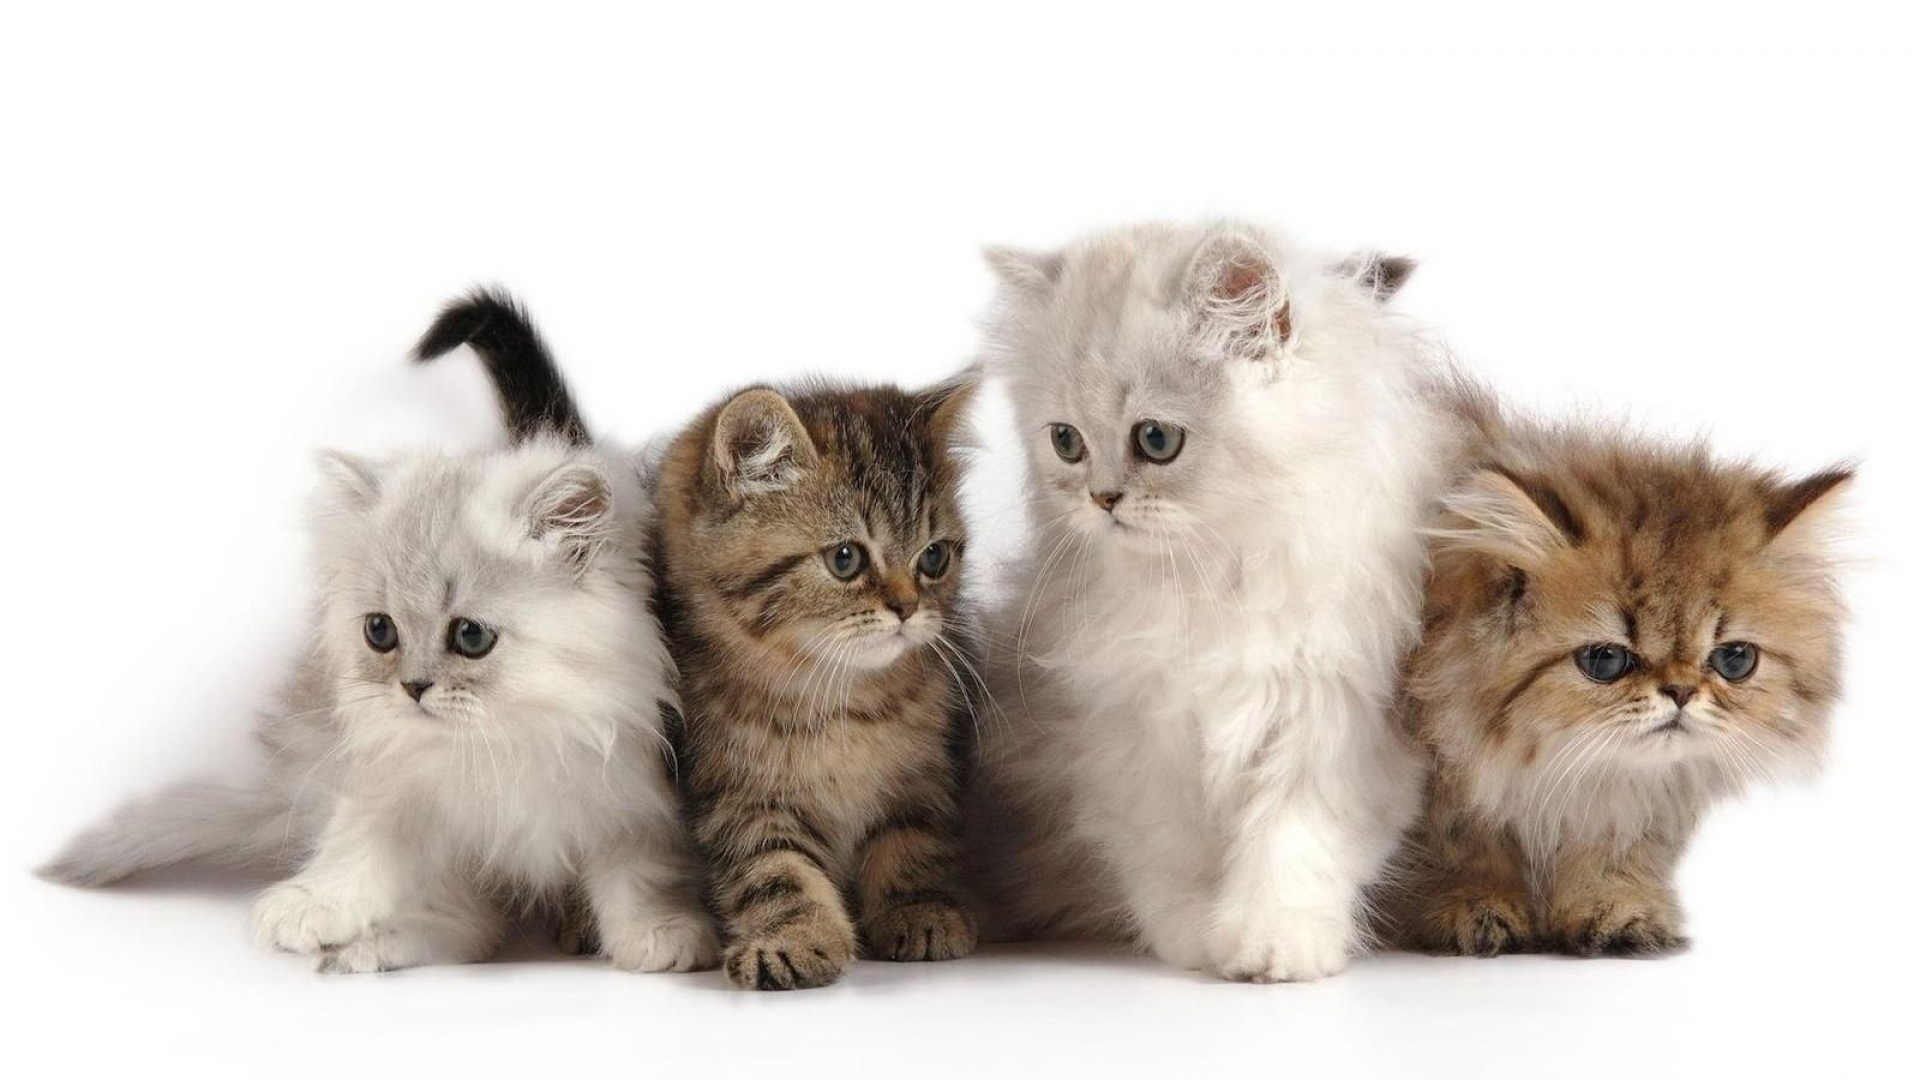 Get The Latest Cat Cats Kitten News Pictures And Videos Learn All About From Wallpapers4uorg Your Wallpaper Source